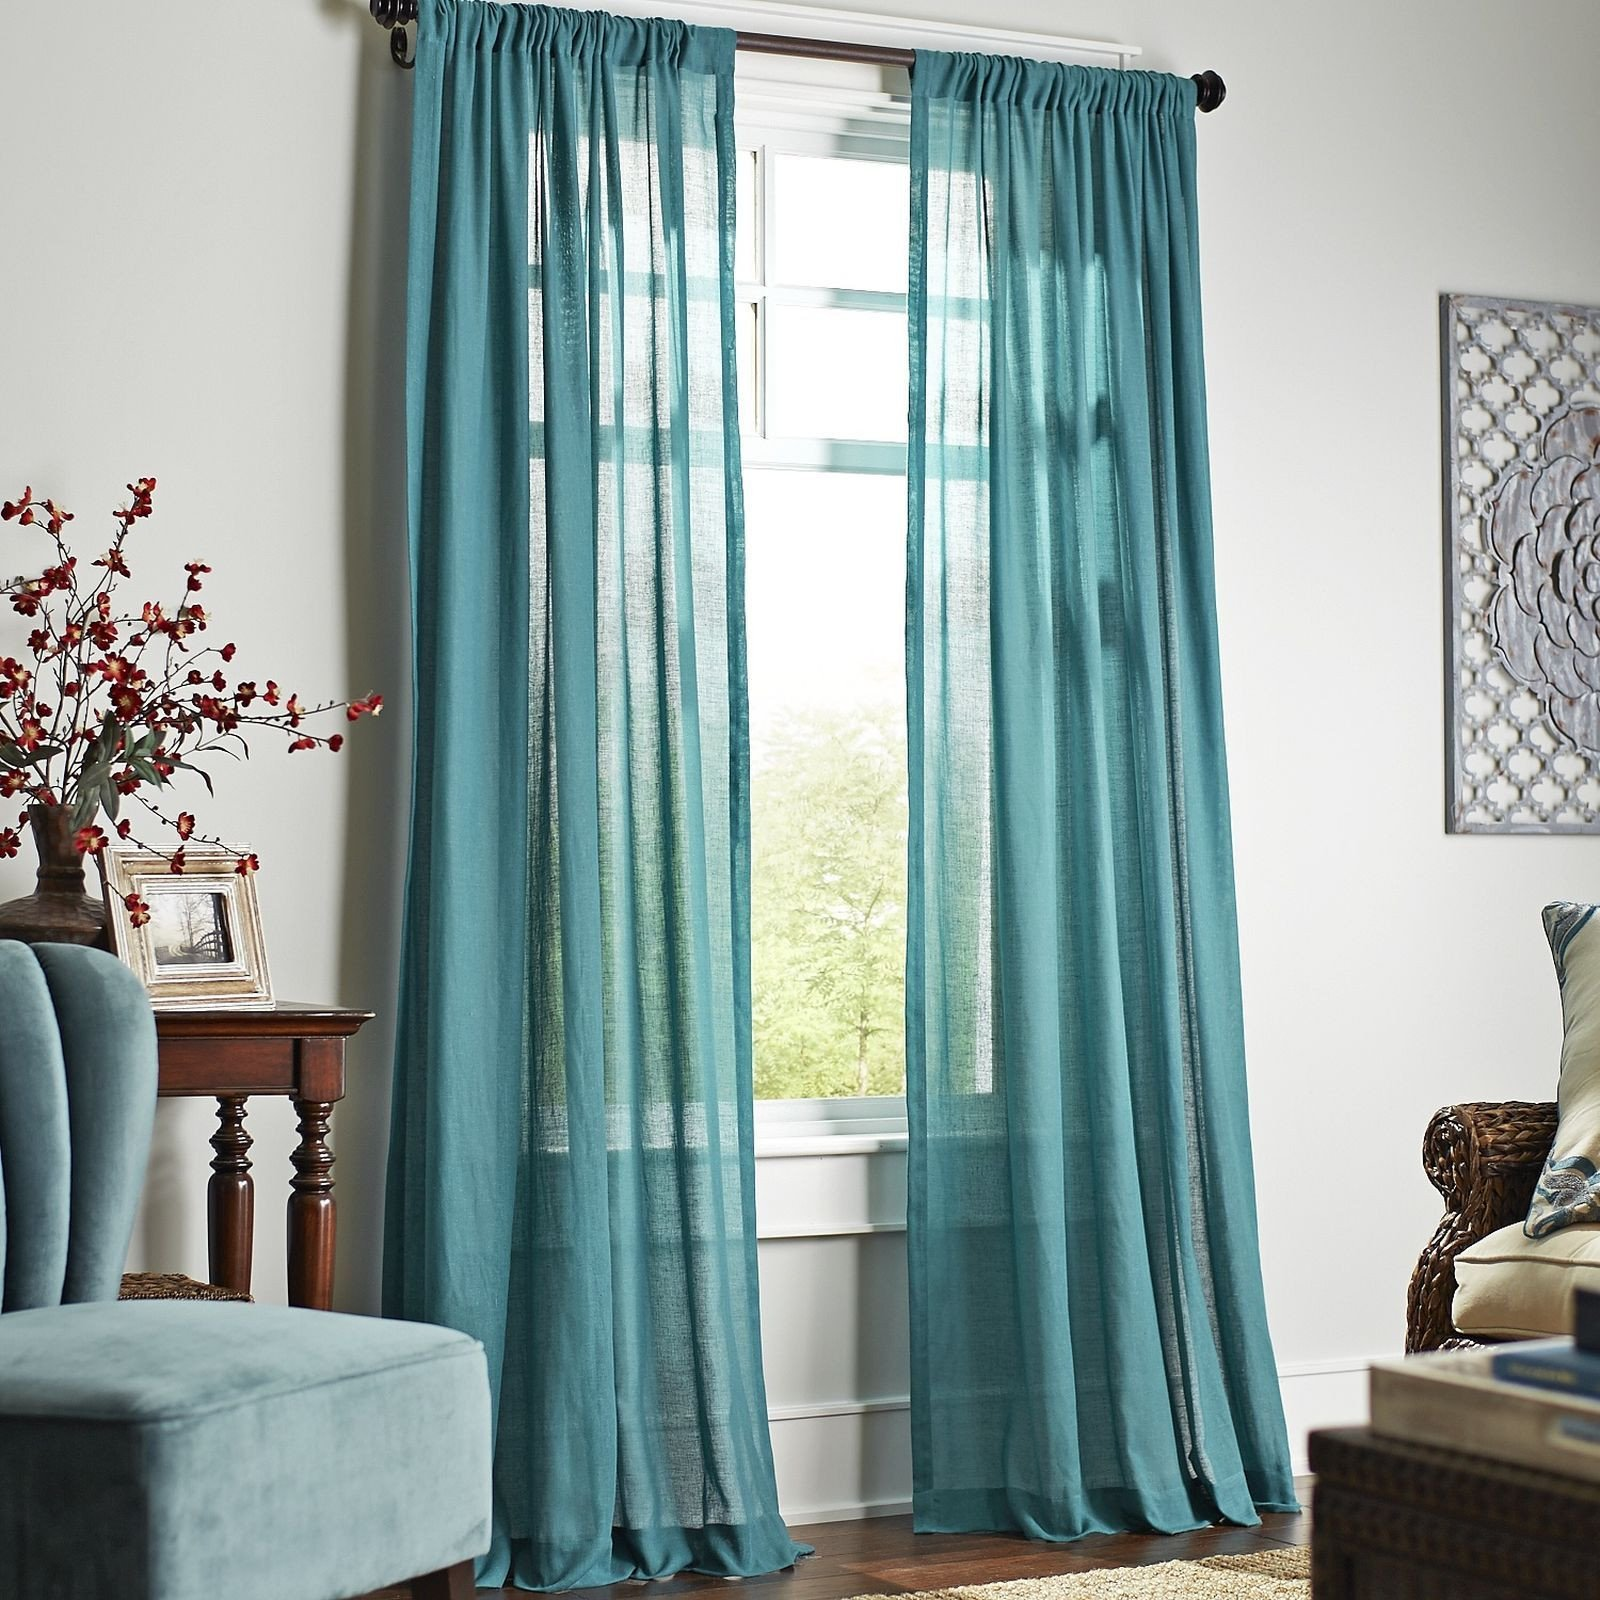 Beautiful Curtains for Bedroom Inspirational Quinn Sheer Curtain Teal Pier 1 Imports